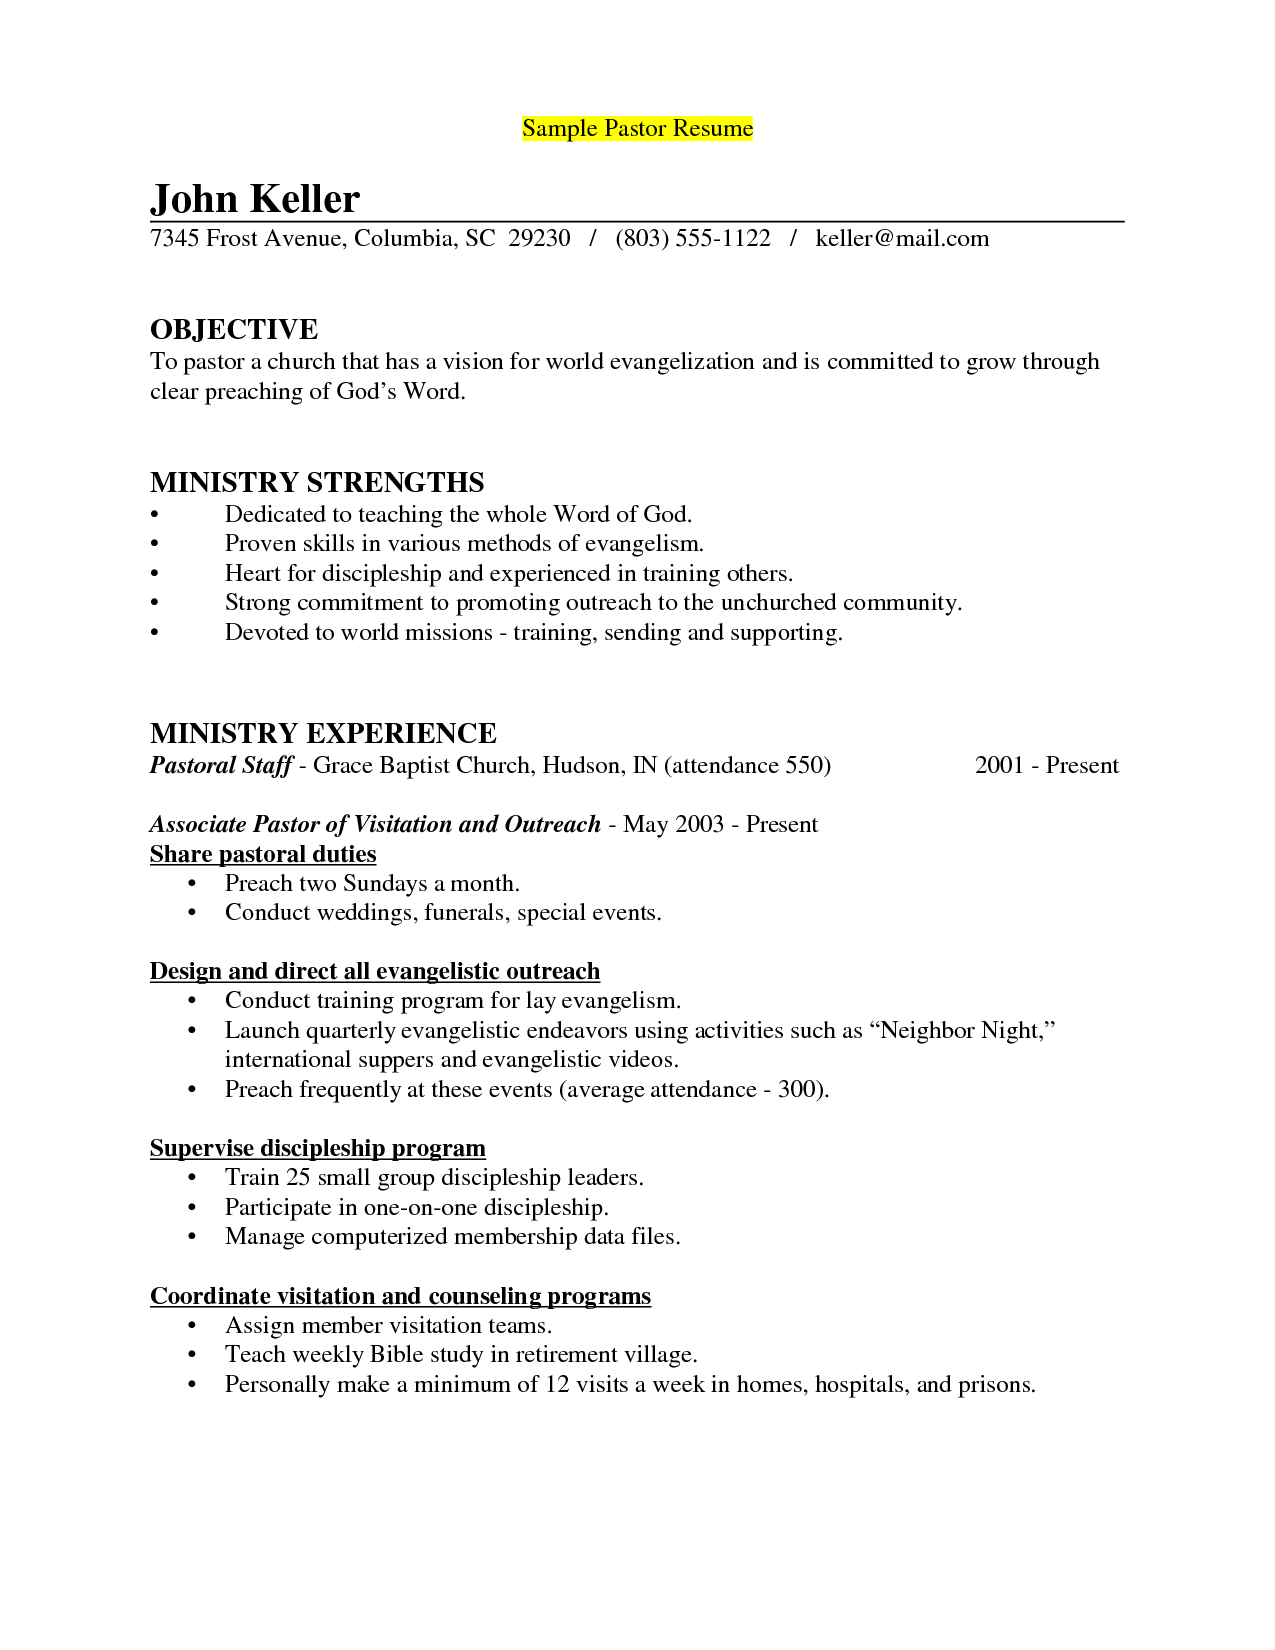 sample of a pastors resume sample resumes for senior pastors - Sample Pastoral Resume